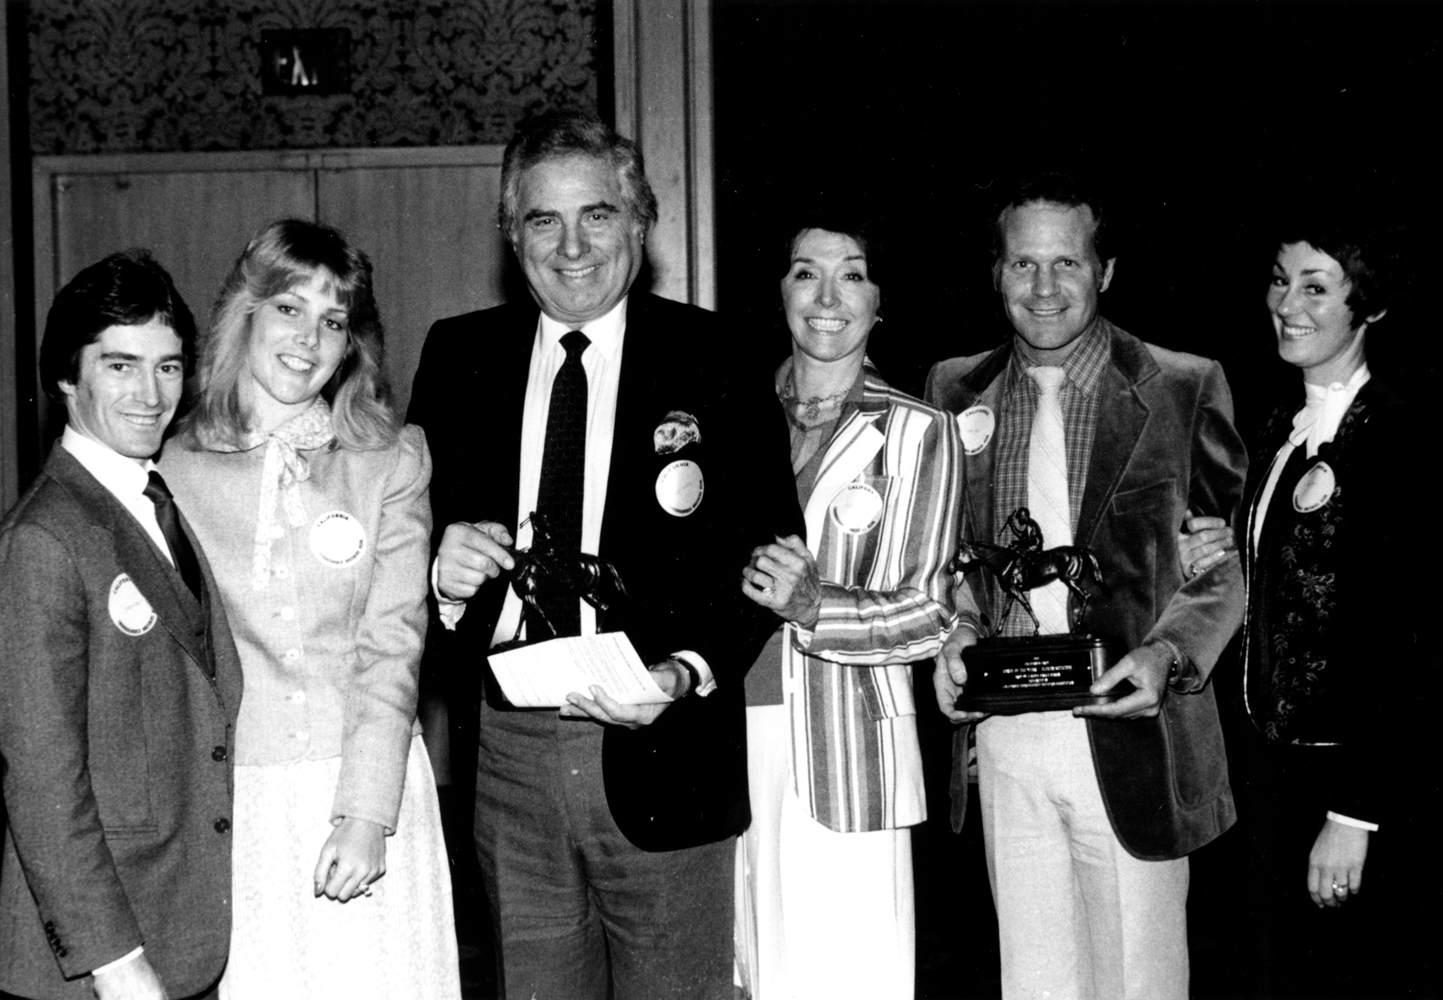 Cal-Bred  Horse of the Year award presentation to the winning connections of Eleven Stitches (Sandy Hawley, Vicki Grosse, Morey and Claudia Mirkin, and Gary and Joan Jones) in February 1982 (Bill Mochon/Museum Collection)